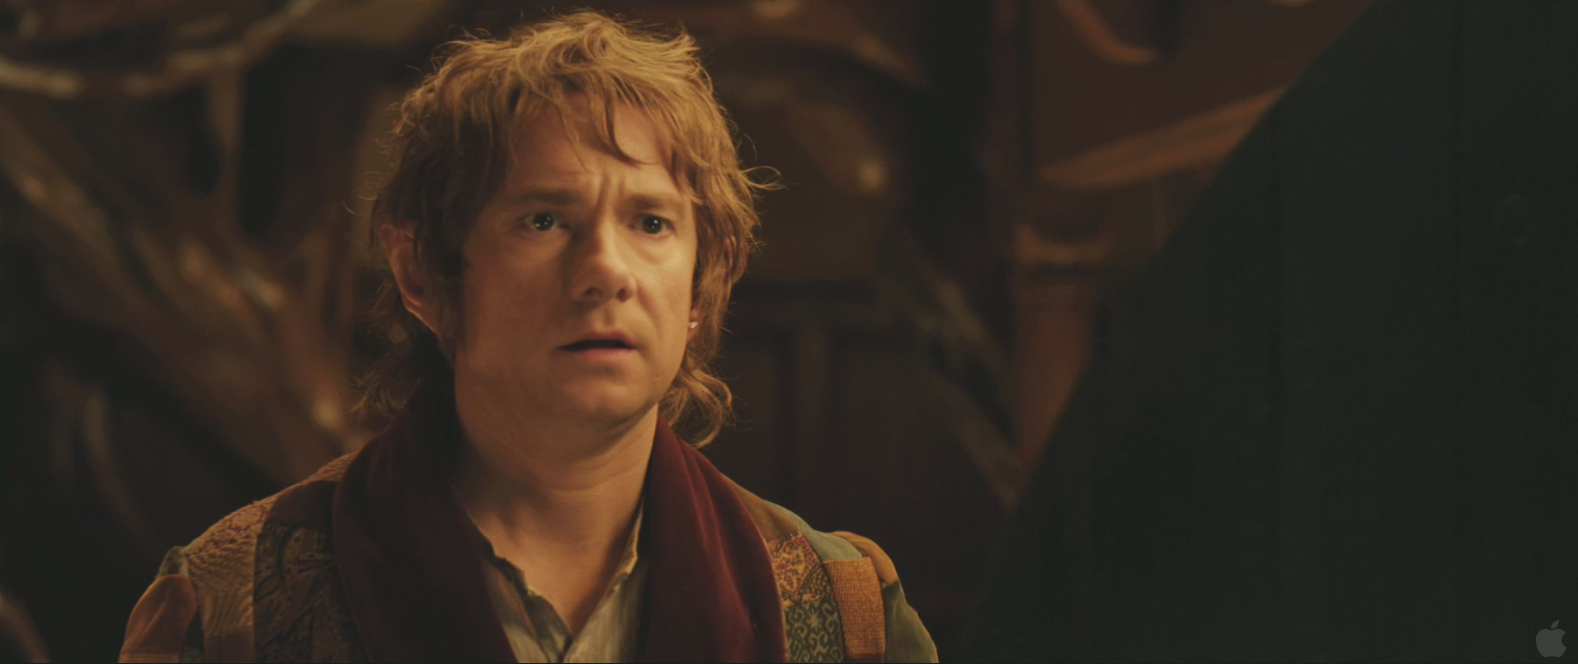 bilbo baggins in the hobbit essay The main character of the book is mr bilbo baggins he is the hobbit who led the dwarves to the lonely mountain to reclaim their treasure essay: the hobbit book.